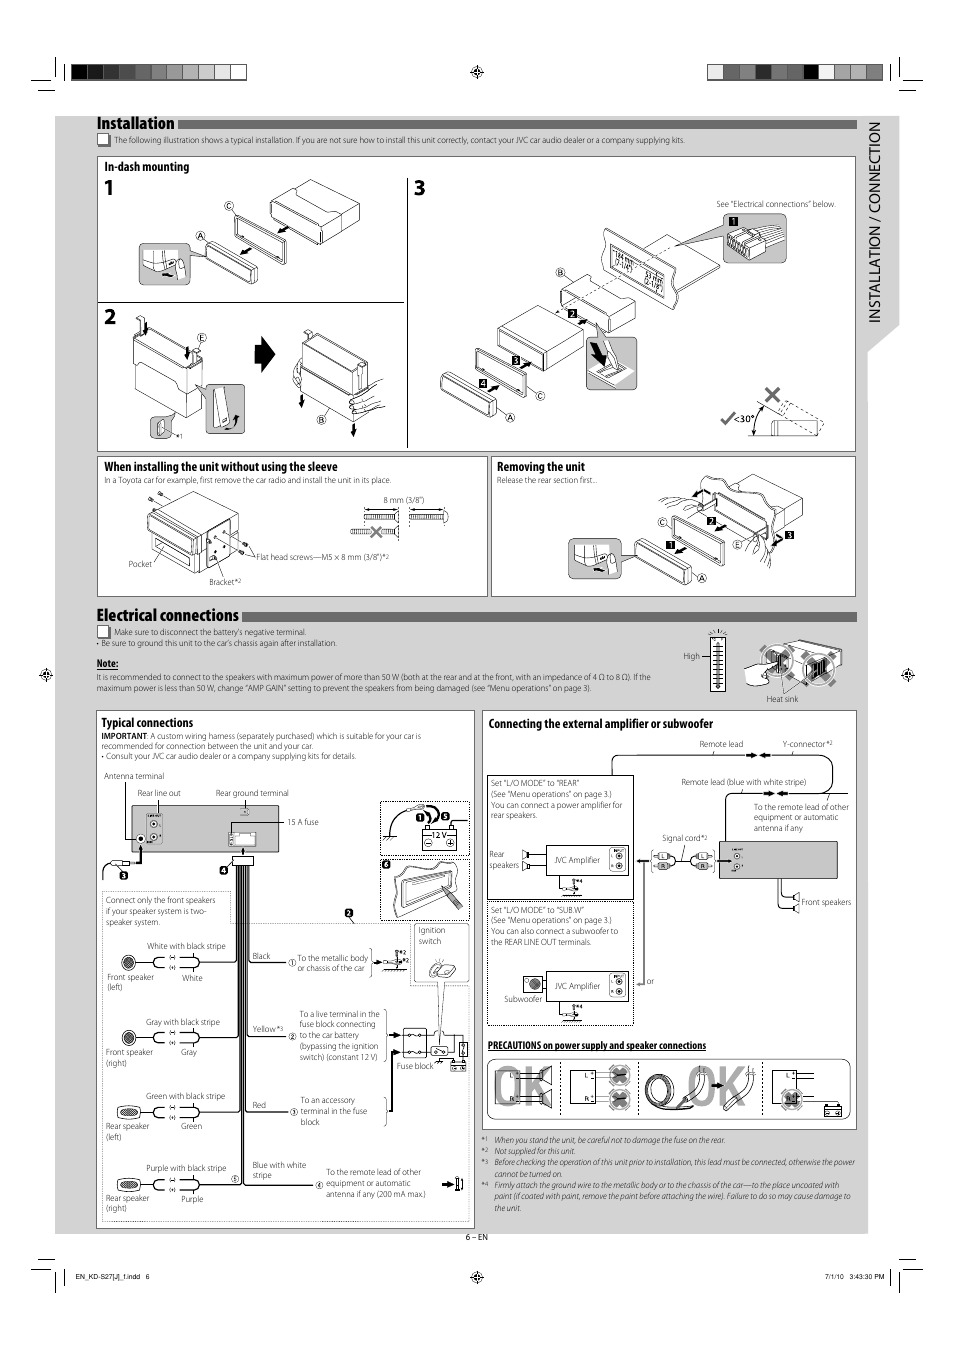 installation electrical connections installation connection rh manualsdir com jvc kw-v230bt installation manual O-Ring Installation Guide